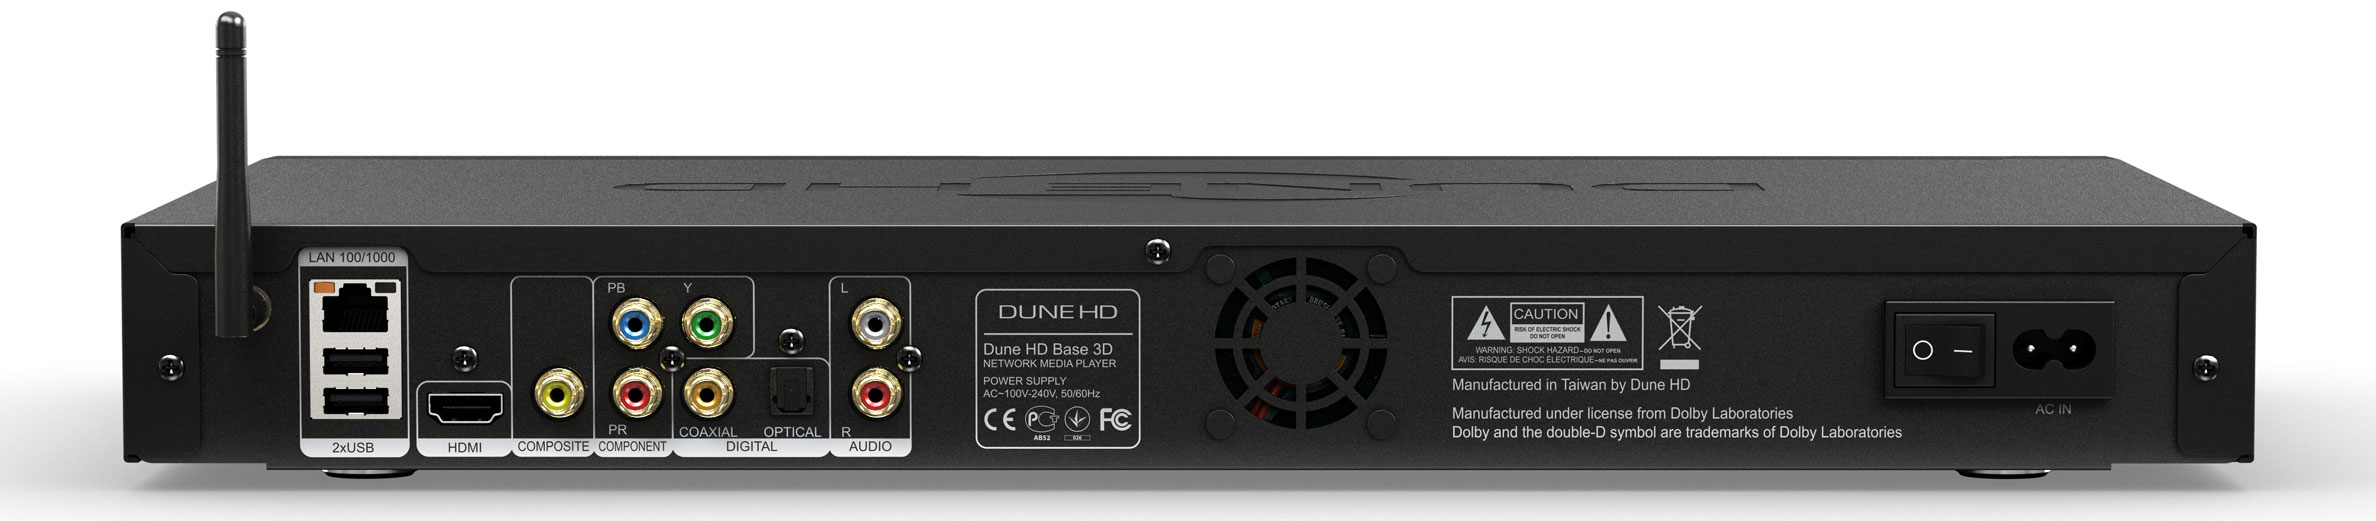 Dune HD Base3D Media Player Drivers Download